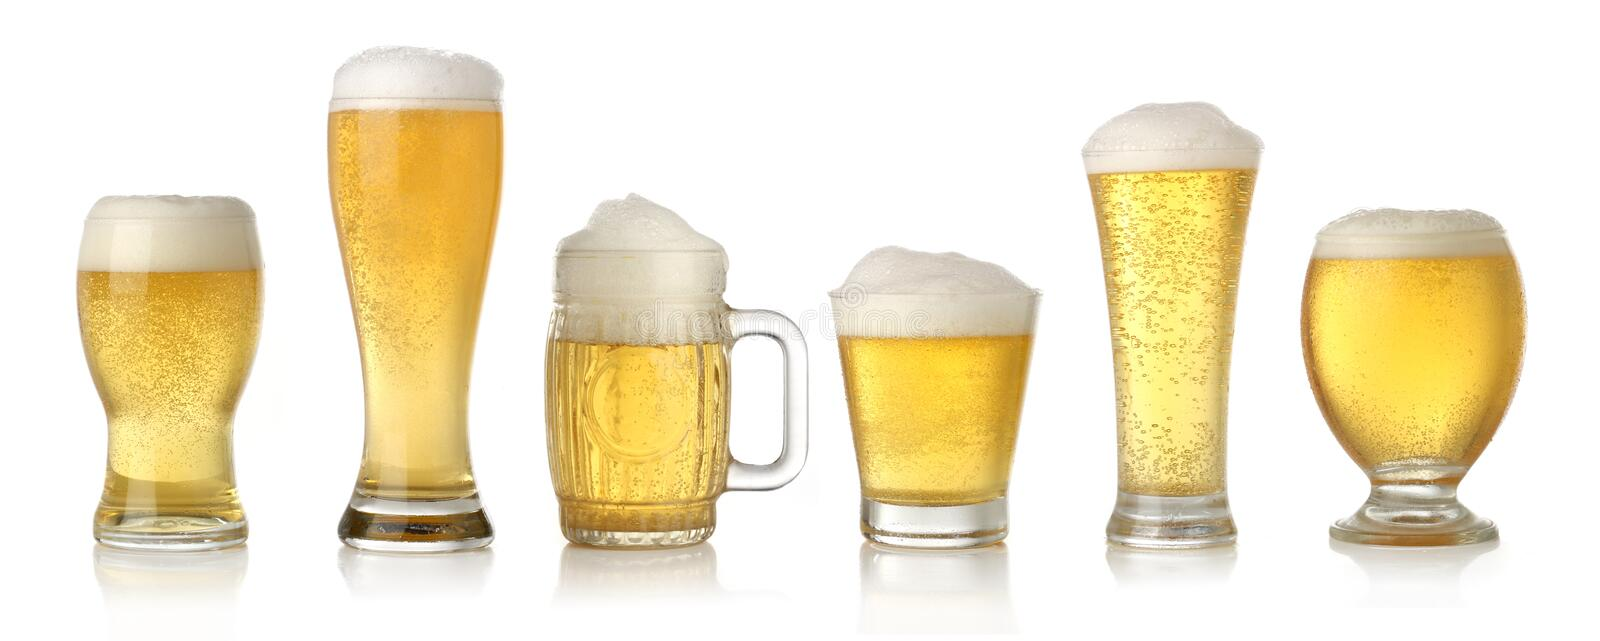 Different glasses of cold lager beer royalty free stock photography